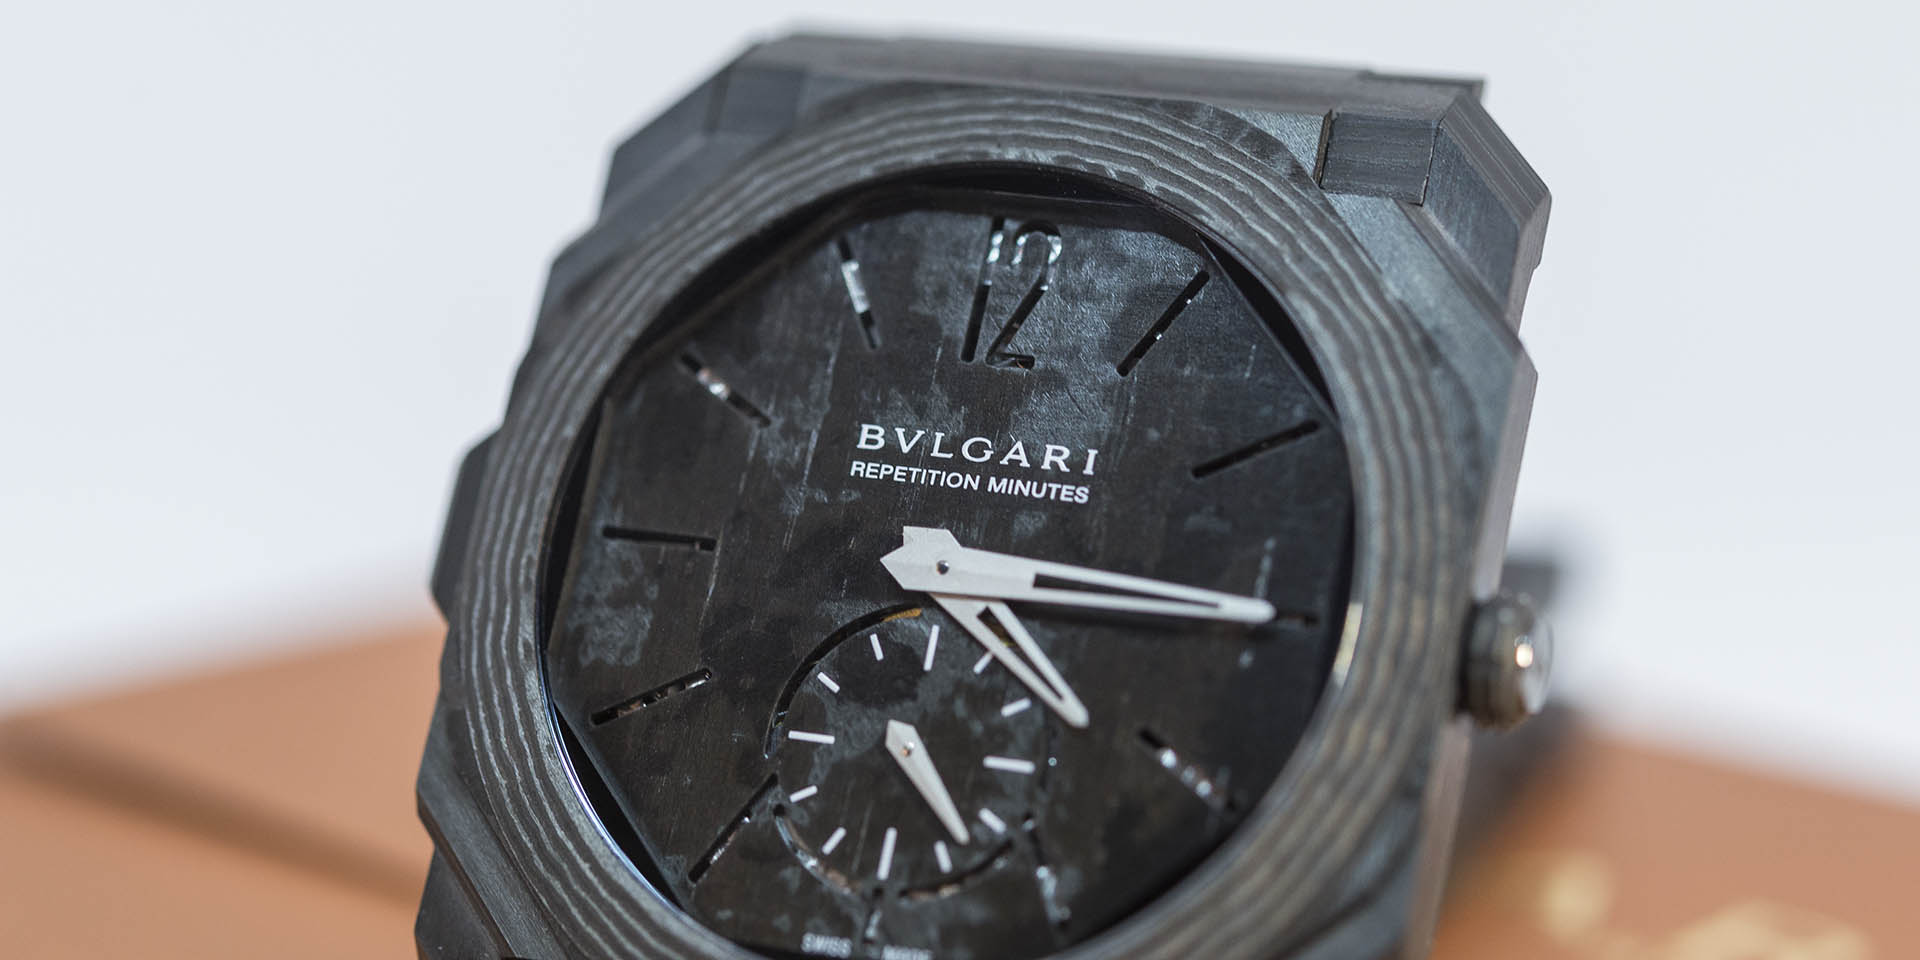 bulgari-octo-finissimo-minute-repeater-carbon-4.jpg